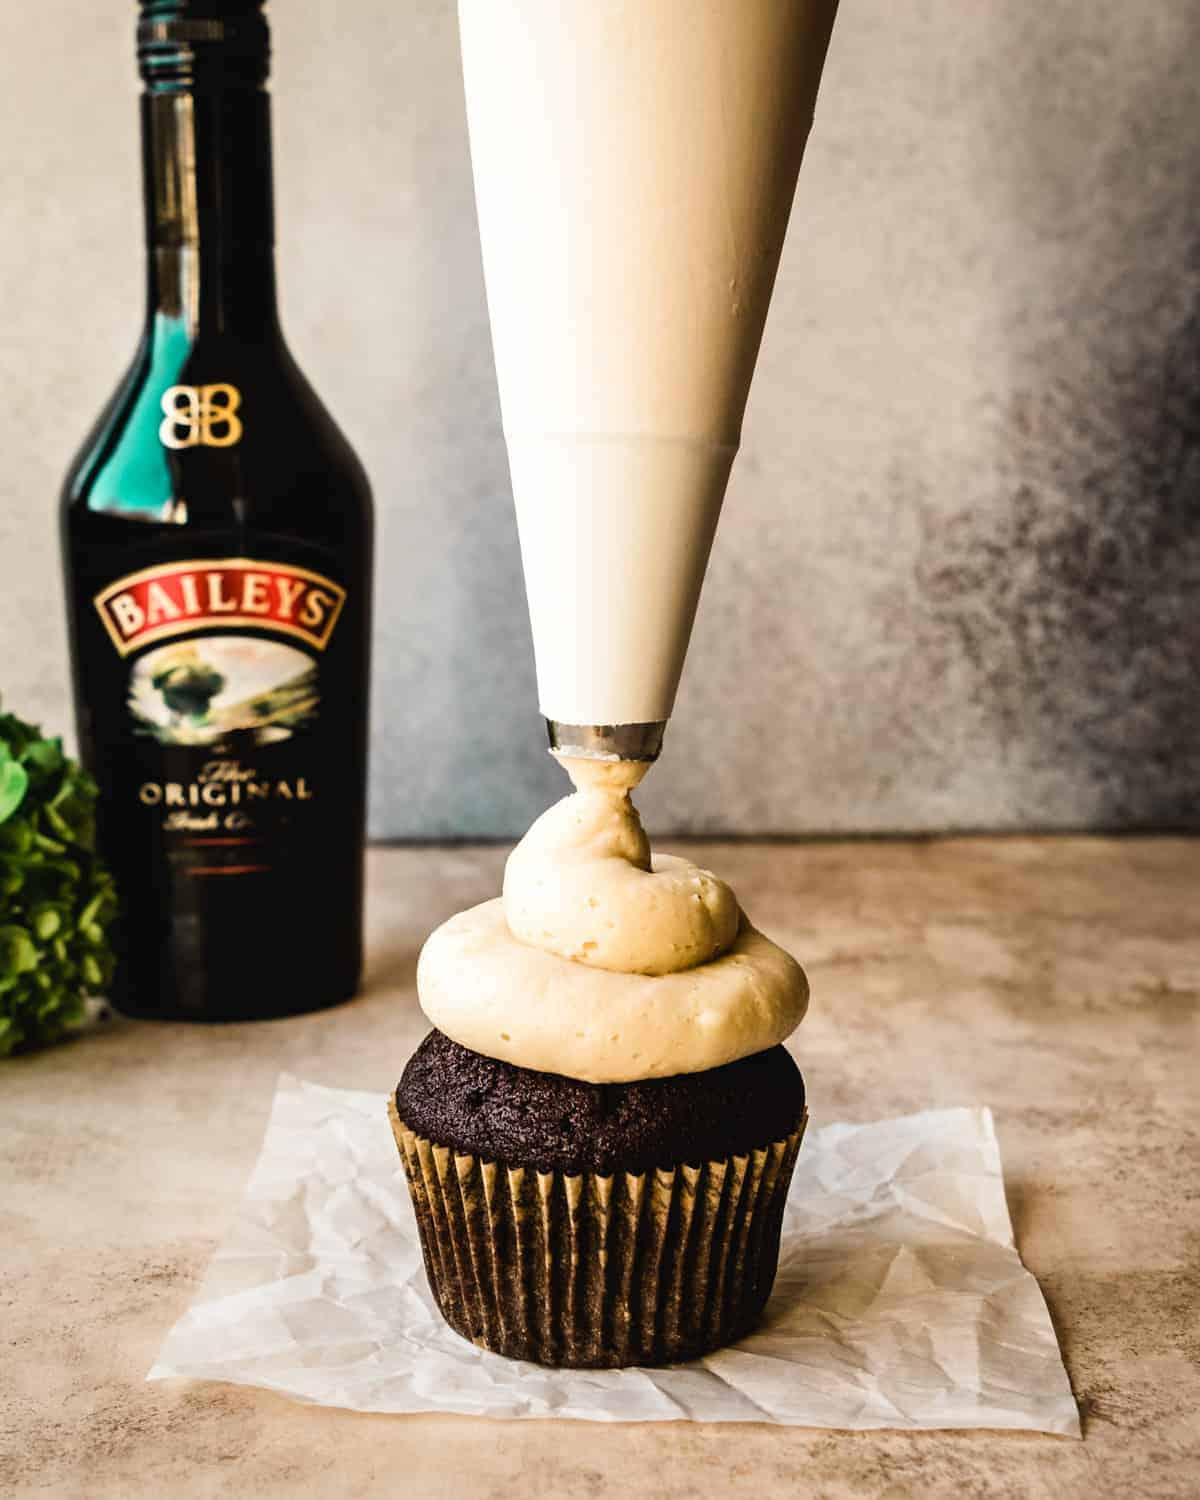 piping baileys buttercream frosting onto a chocolate cupcake